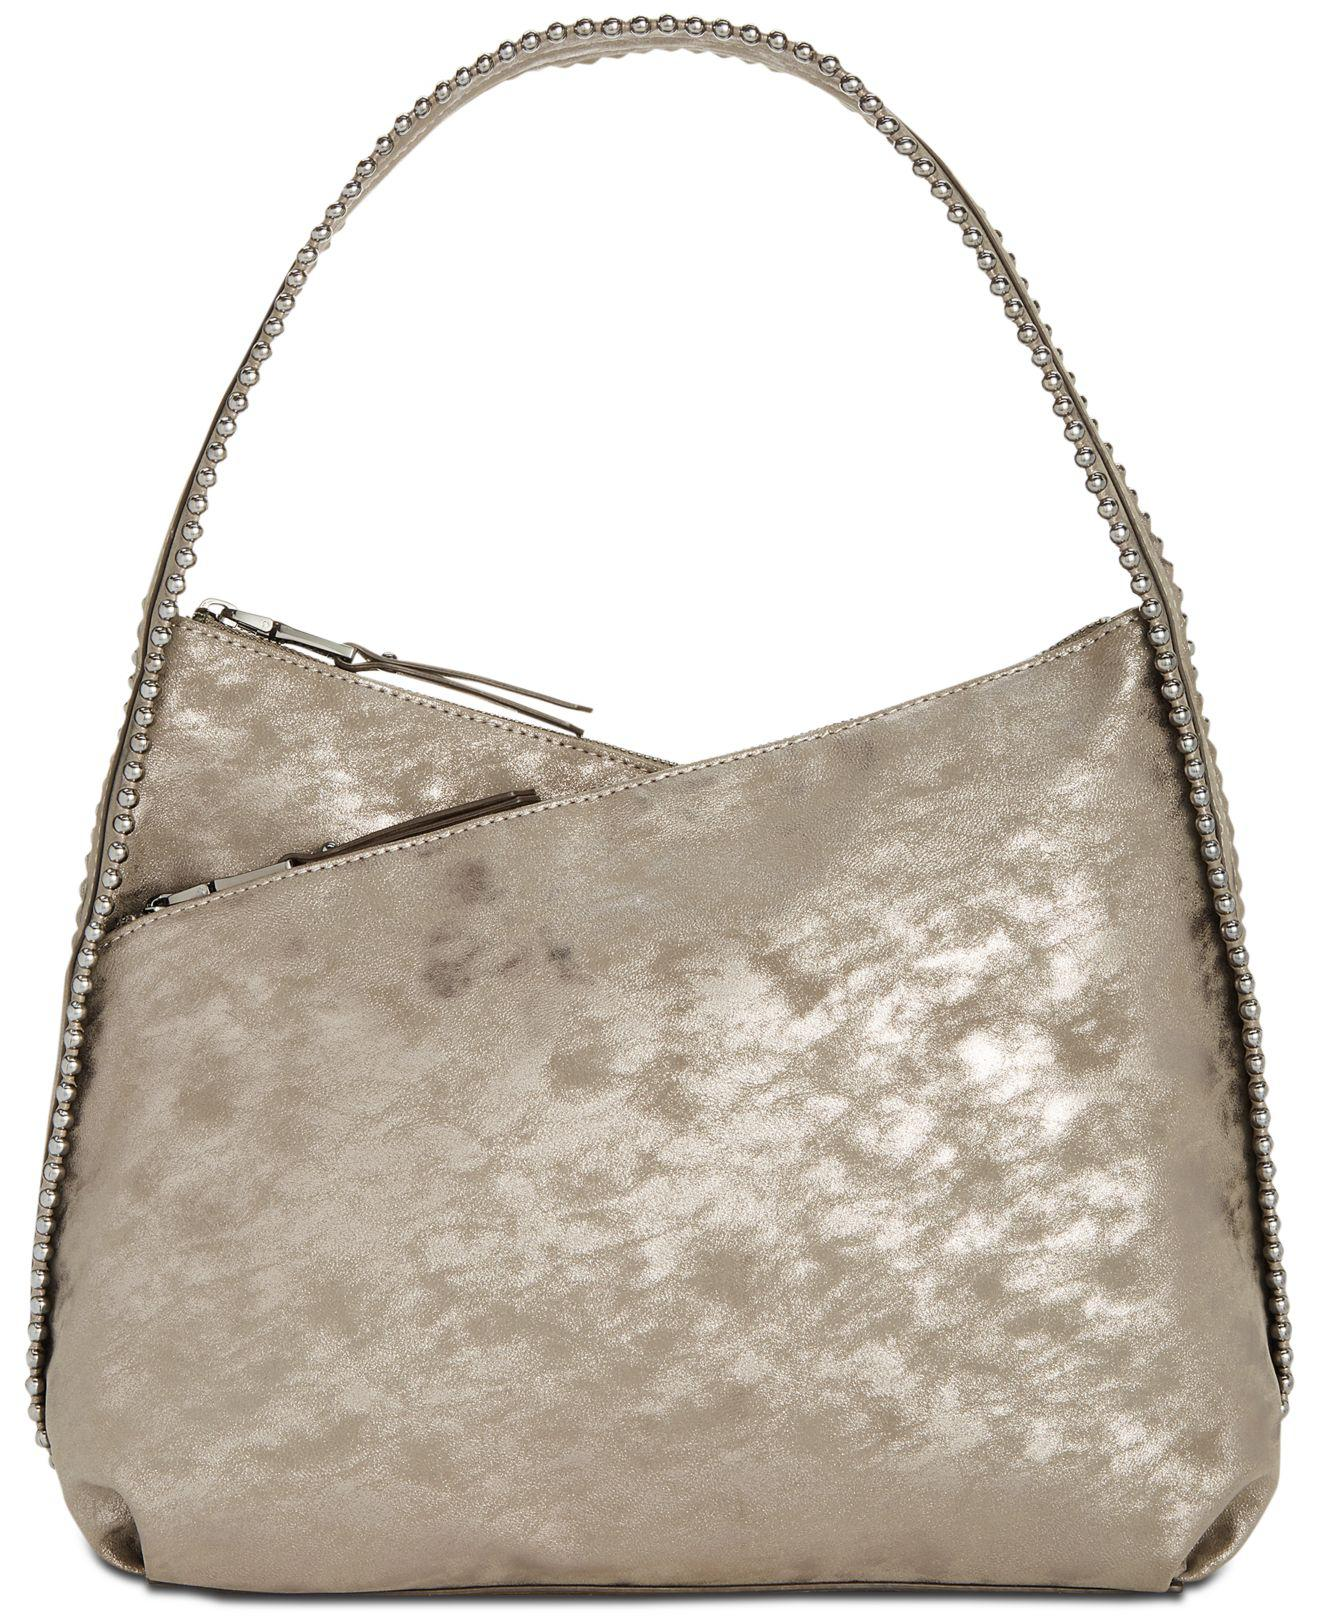 570a9c04e00 Lyst - Inc International Concepts Valliee Medium Shoulder Bag in Gray